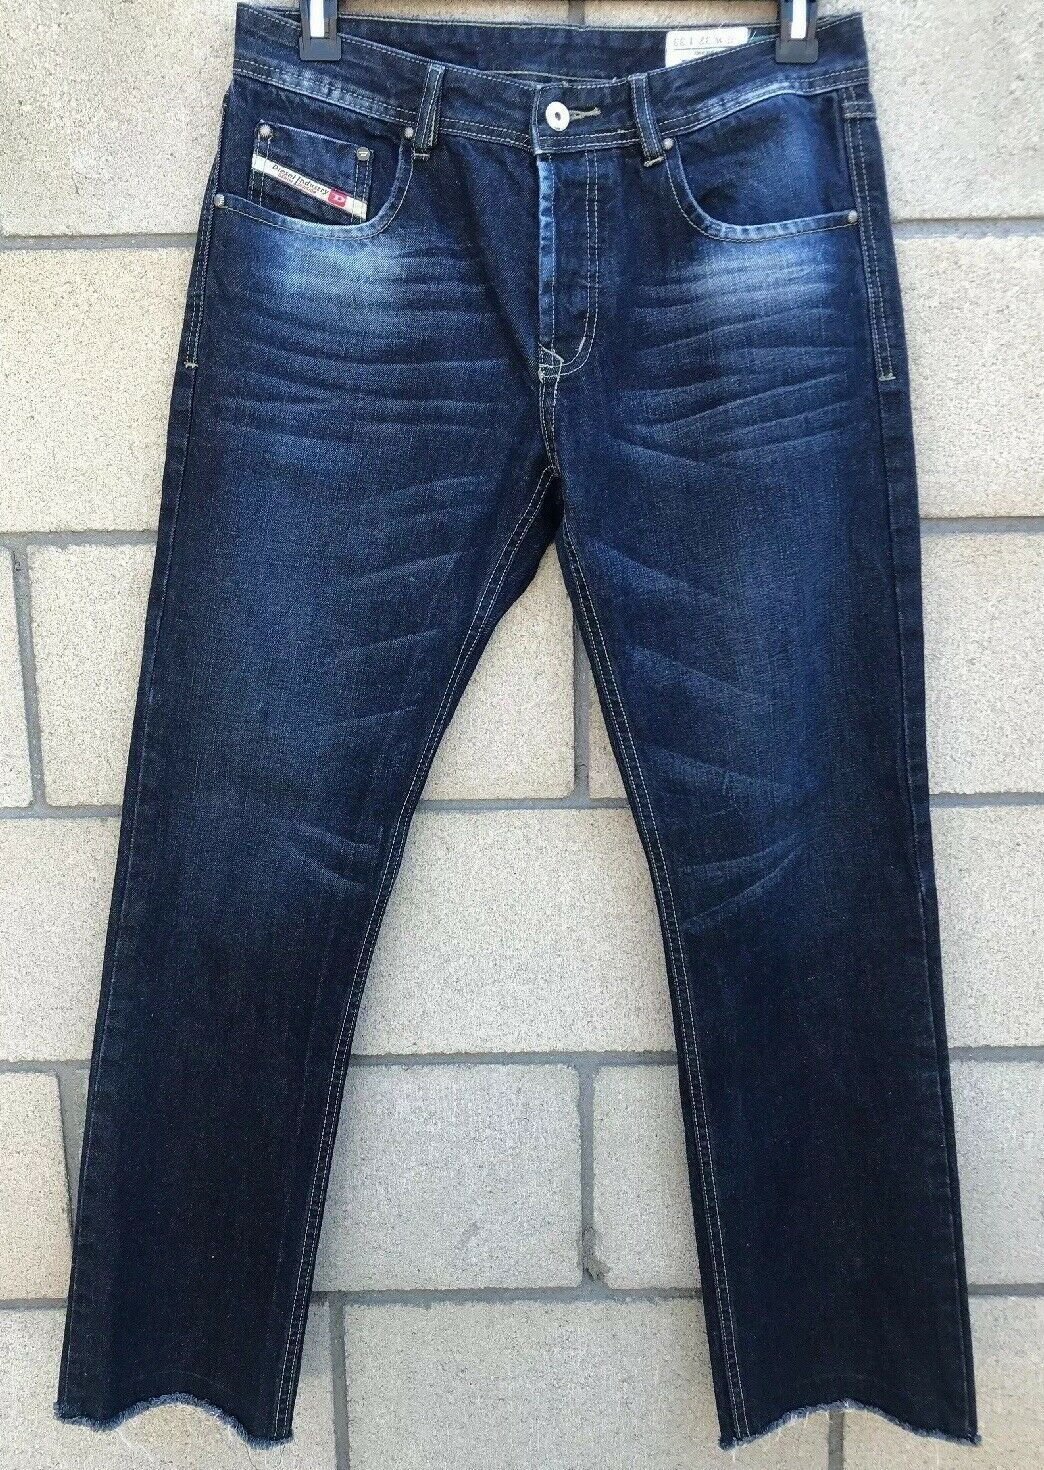 Diesel Darron Slim Jeans Mens Size 32x31 bluee Wash 008UP Button Fly Cropped Legs